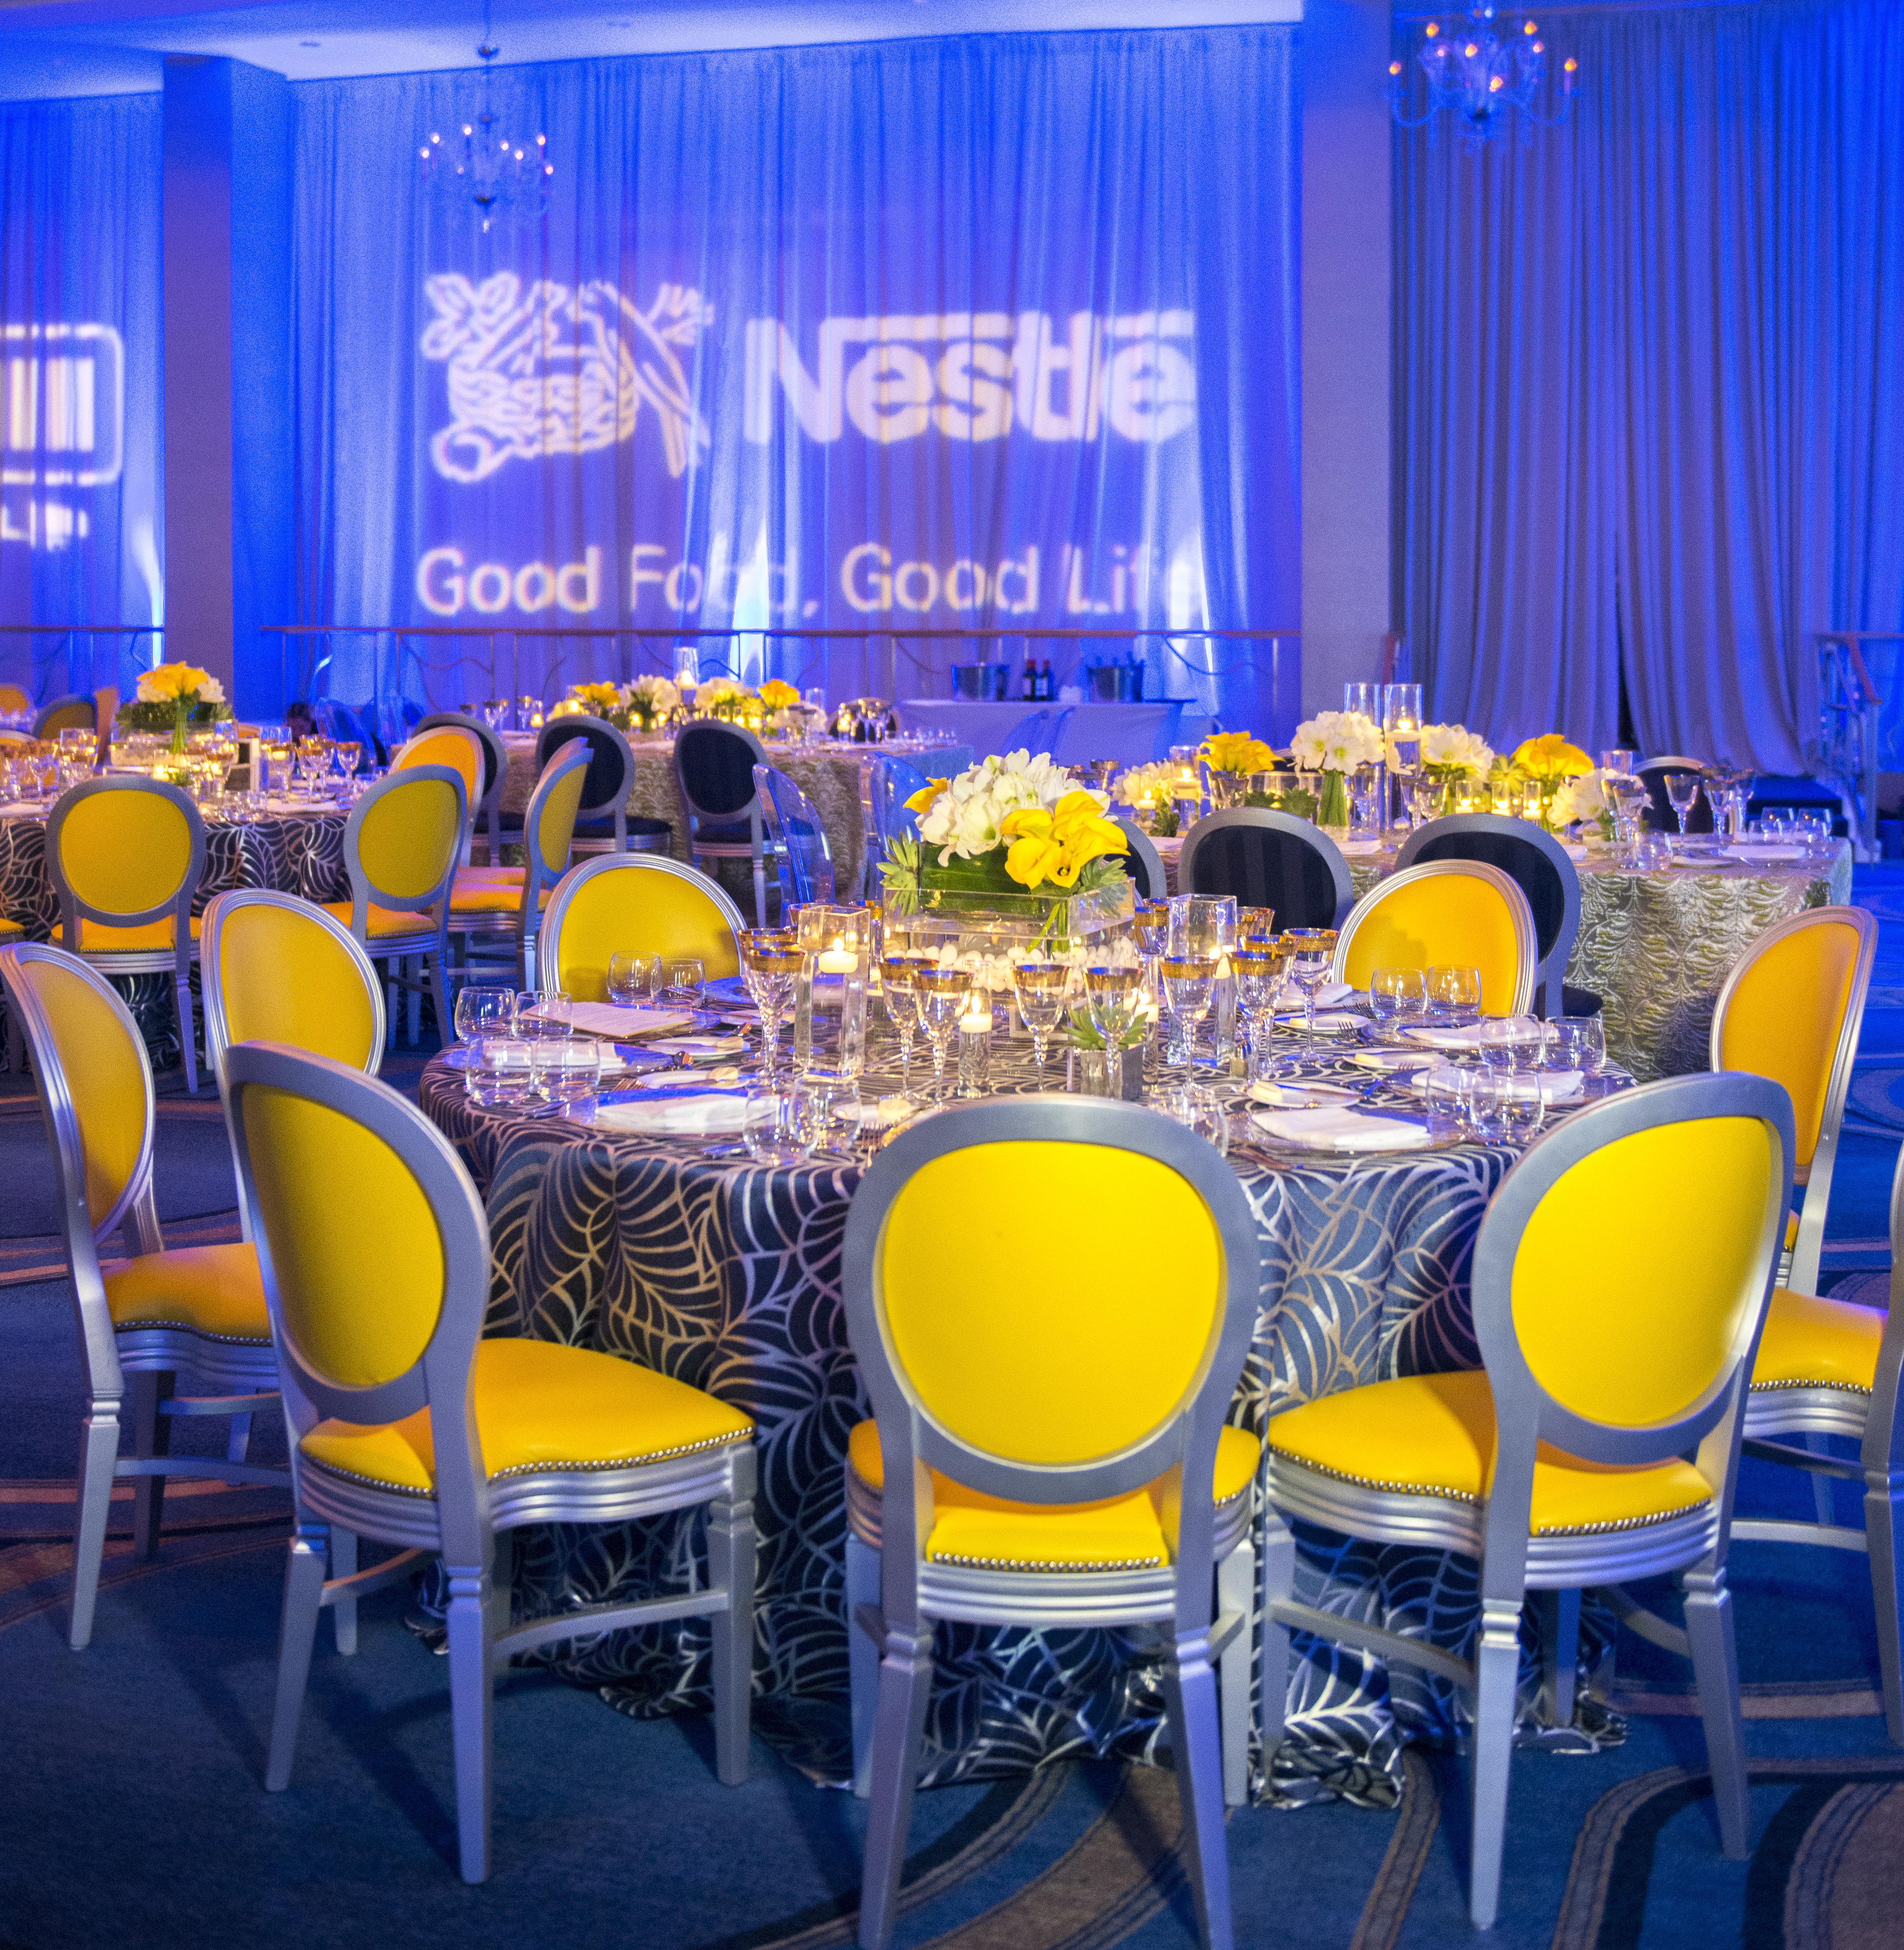 Nestle Corporate Event at Fontainebleau Miami - Carrie Zack Events